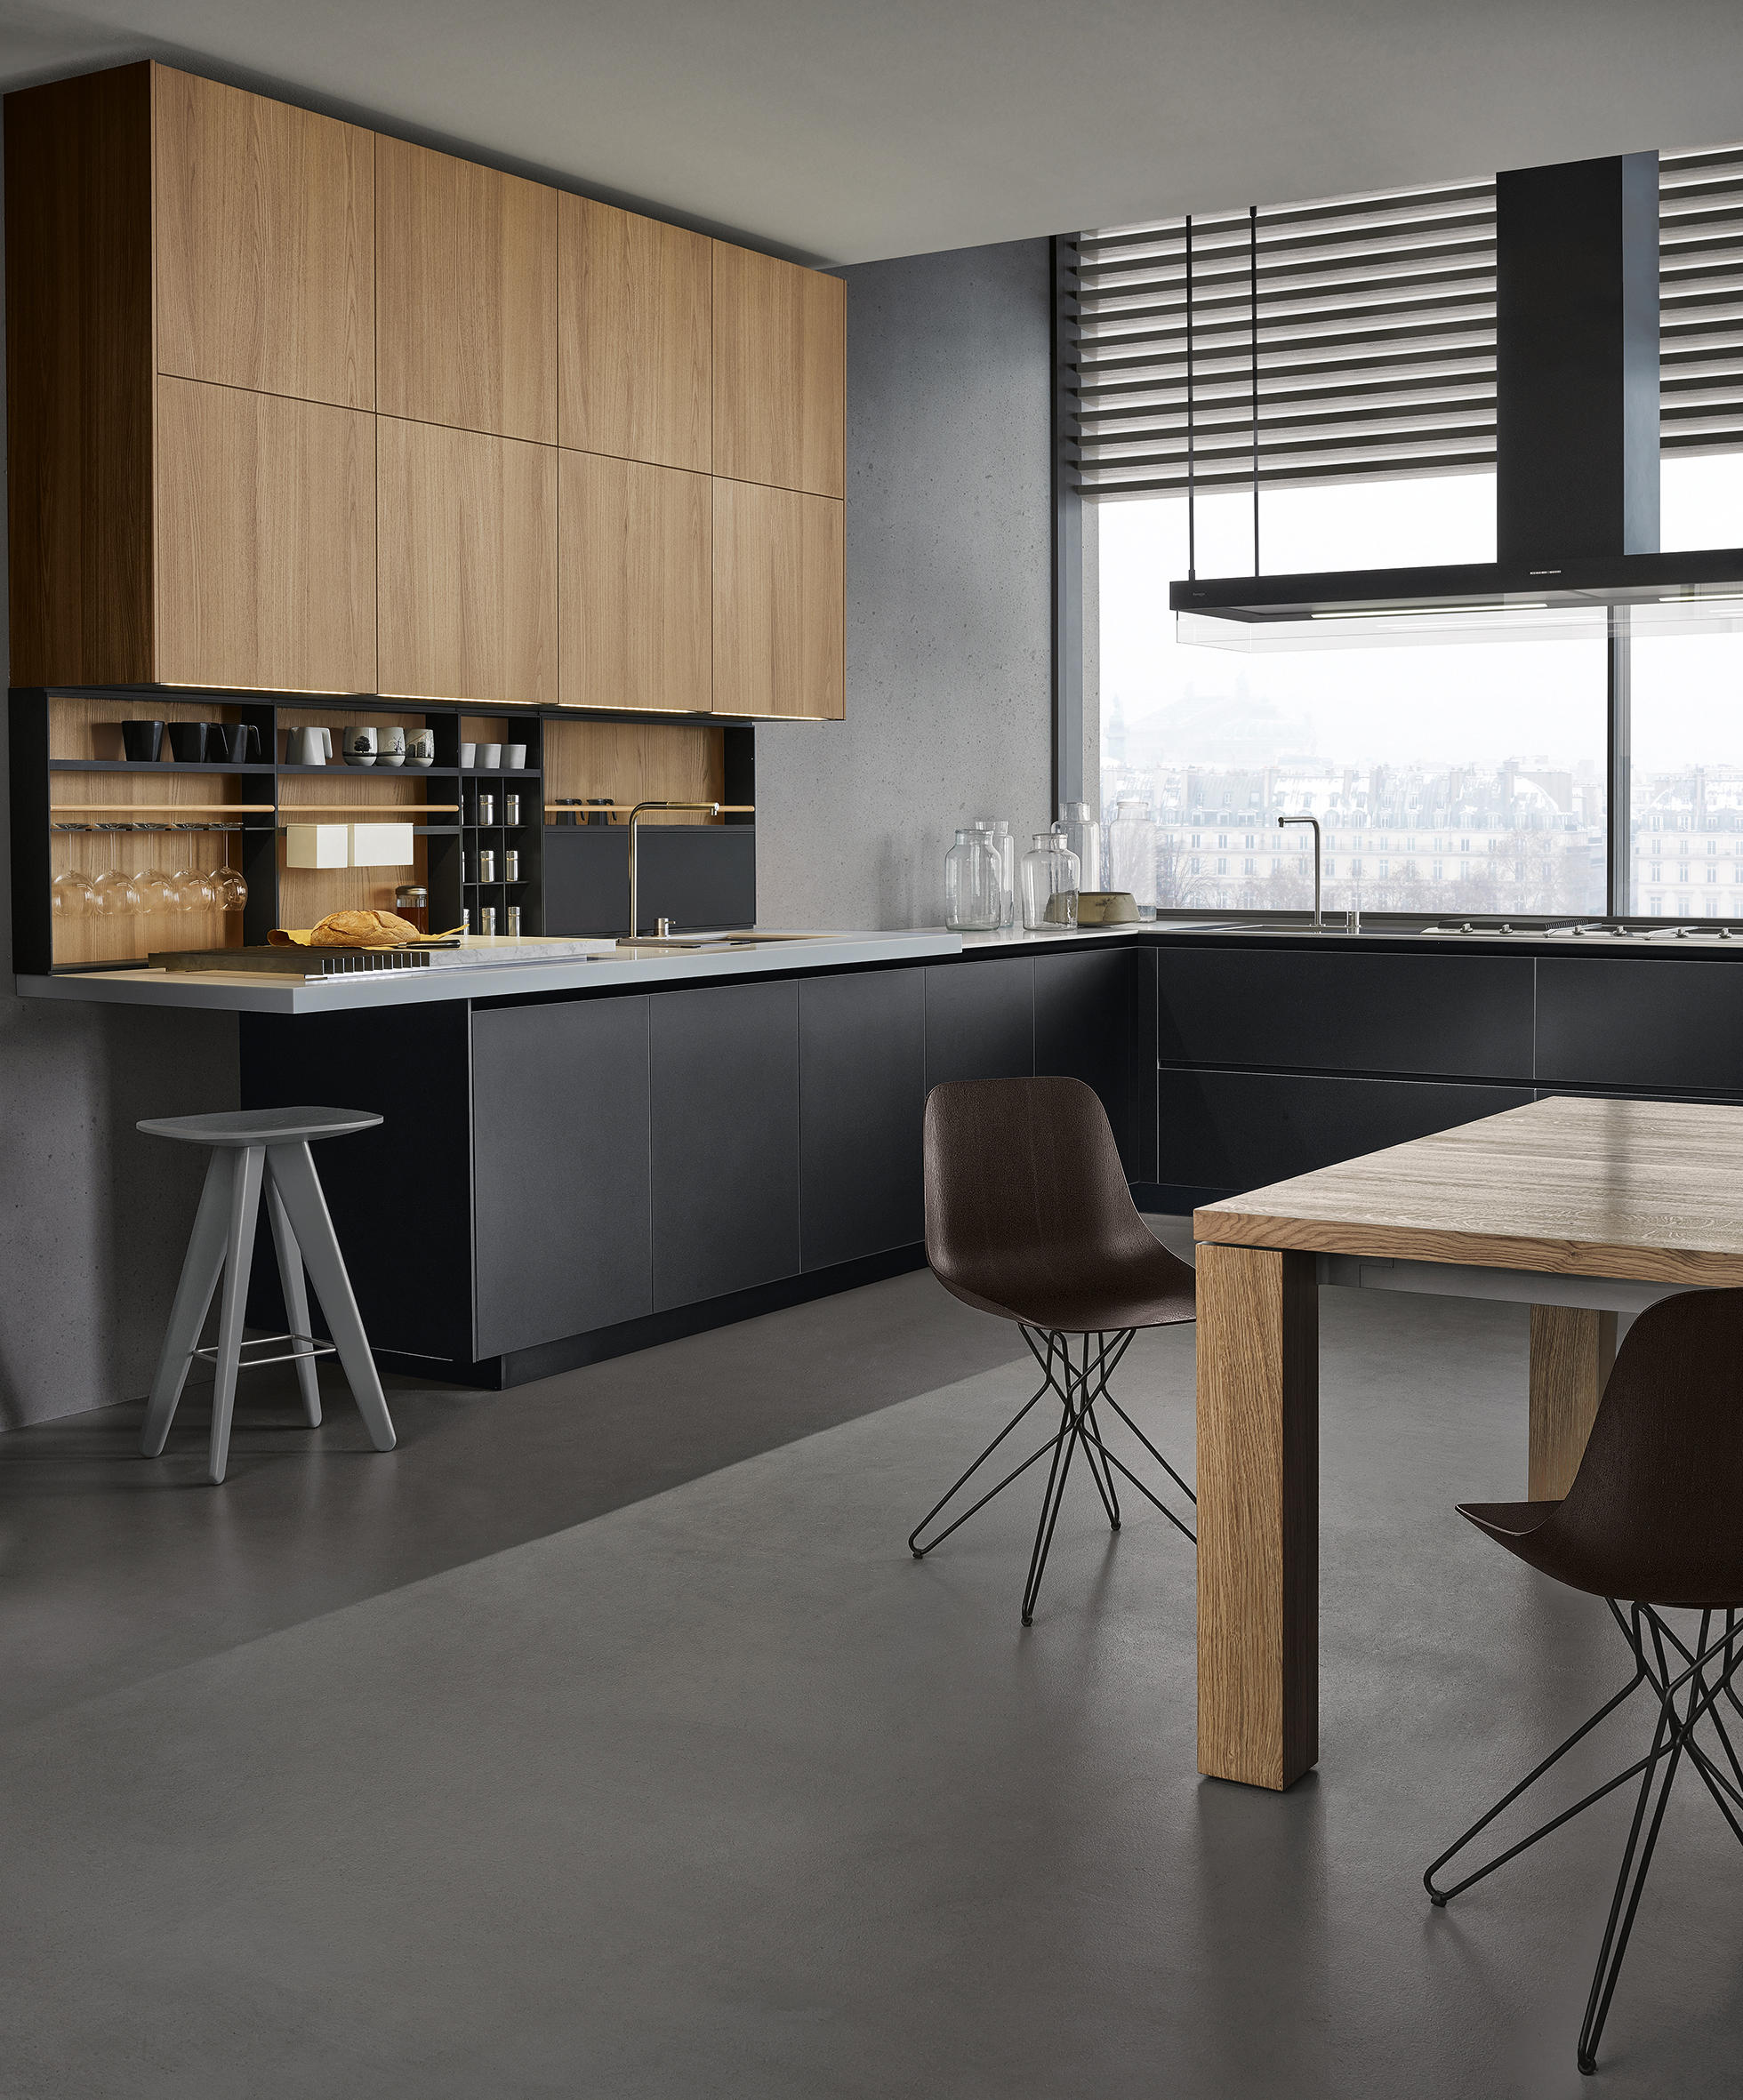 Varenna Cuisine | Twelve Fitted Kitchens From Varenna Poliform Architonic